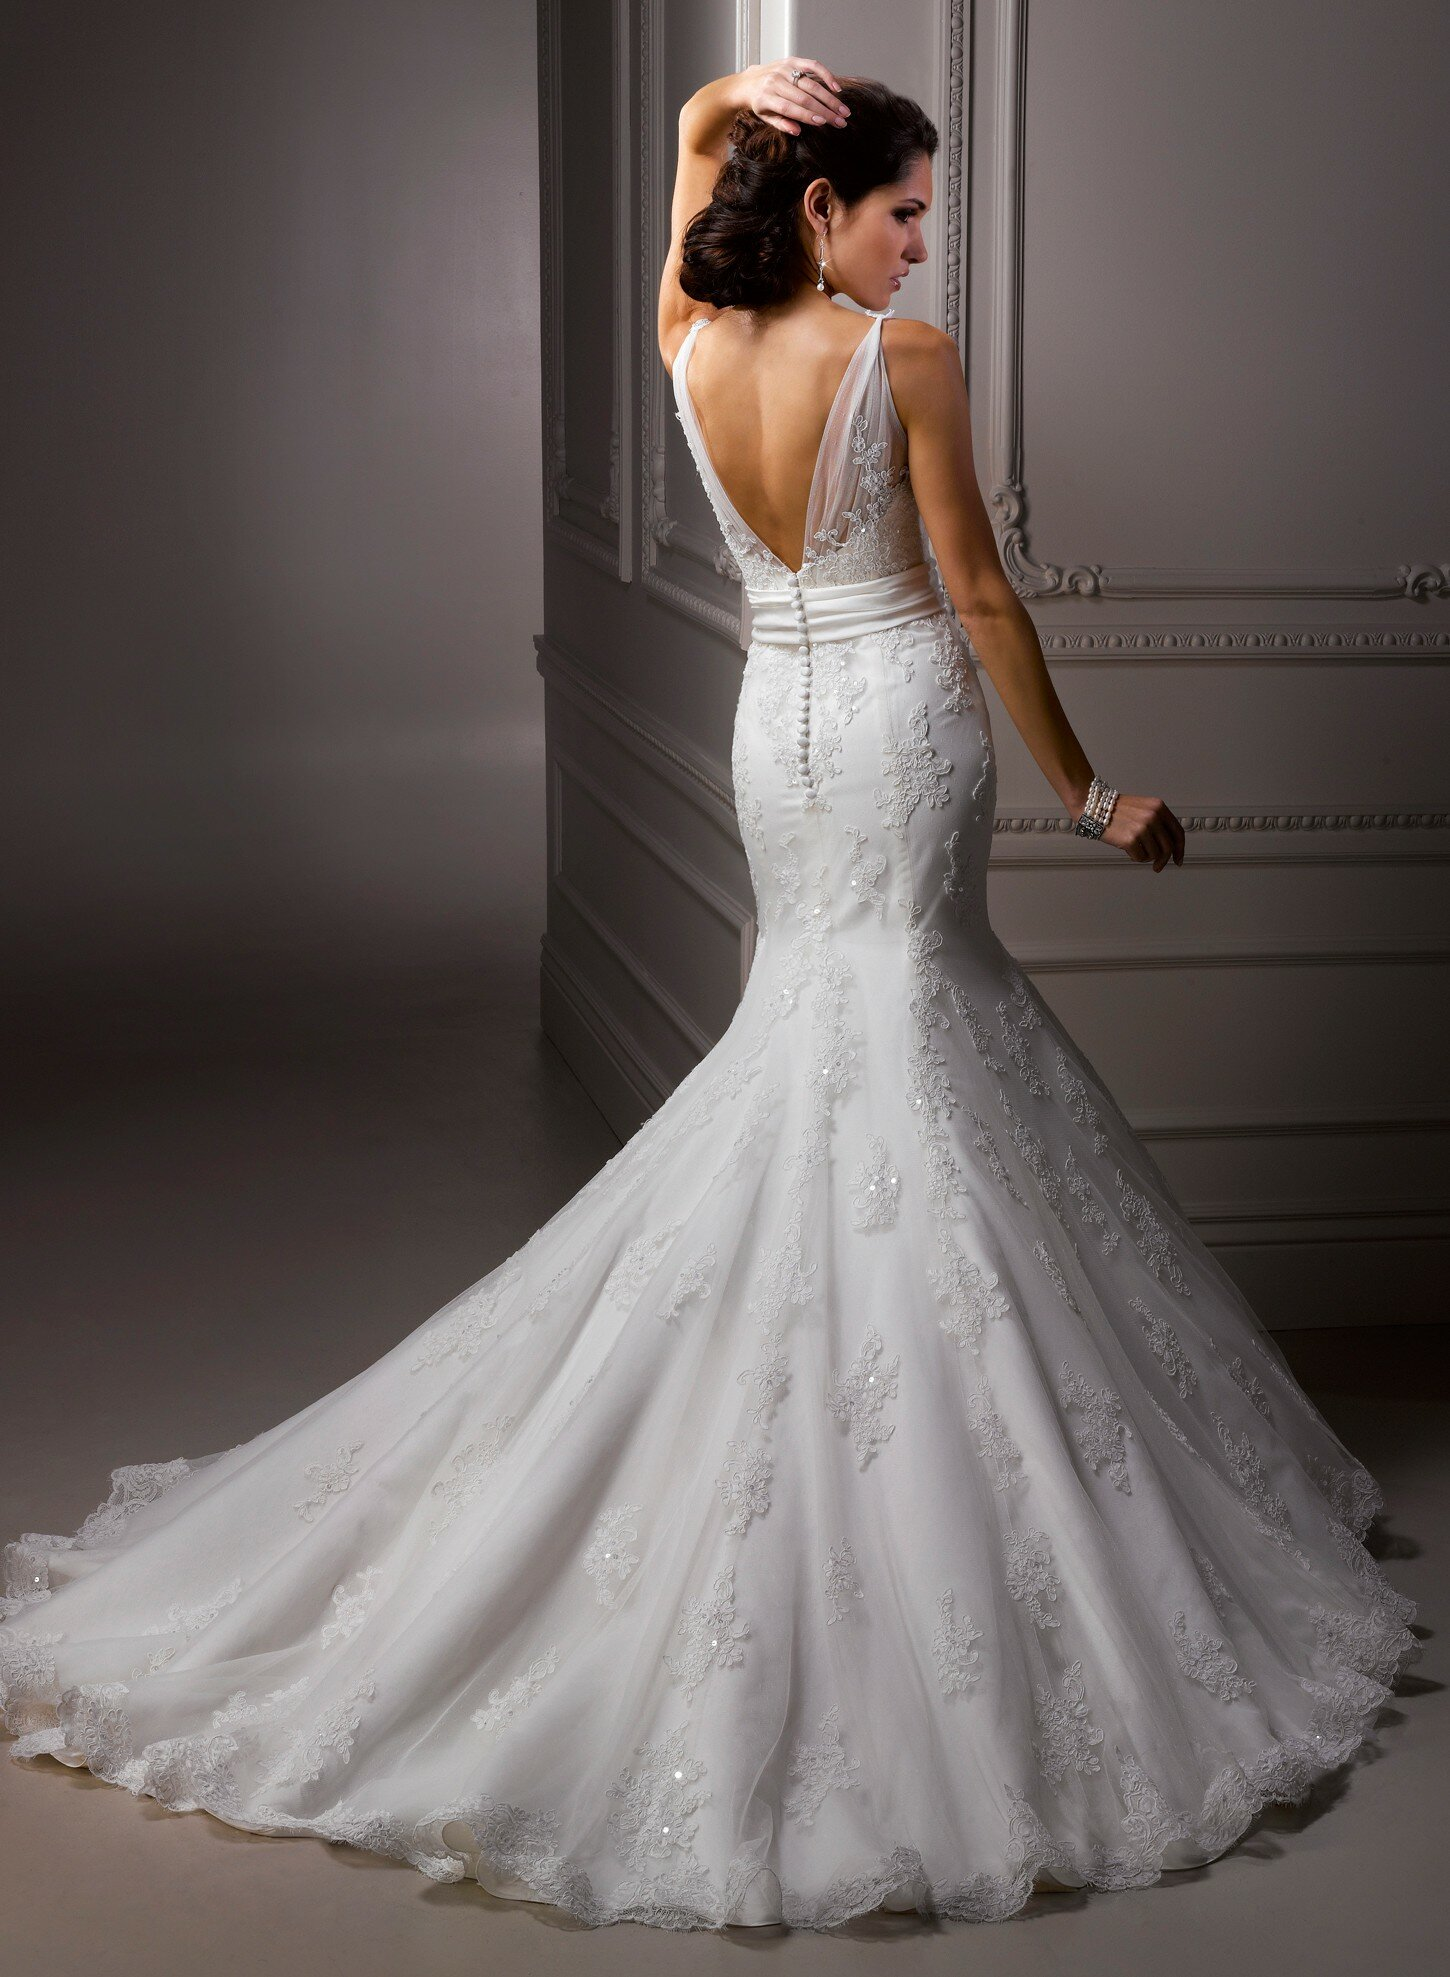 Summer wedding dresses 2013 Photo - 2